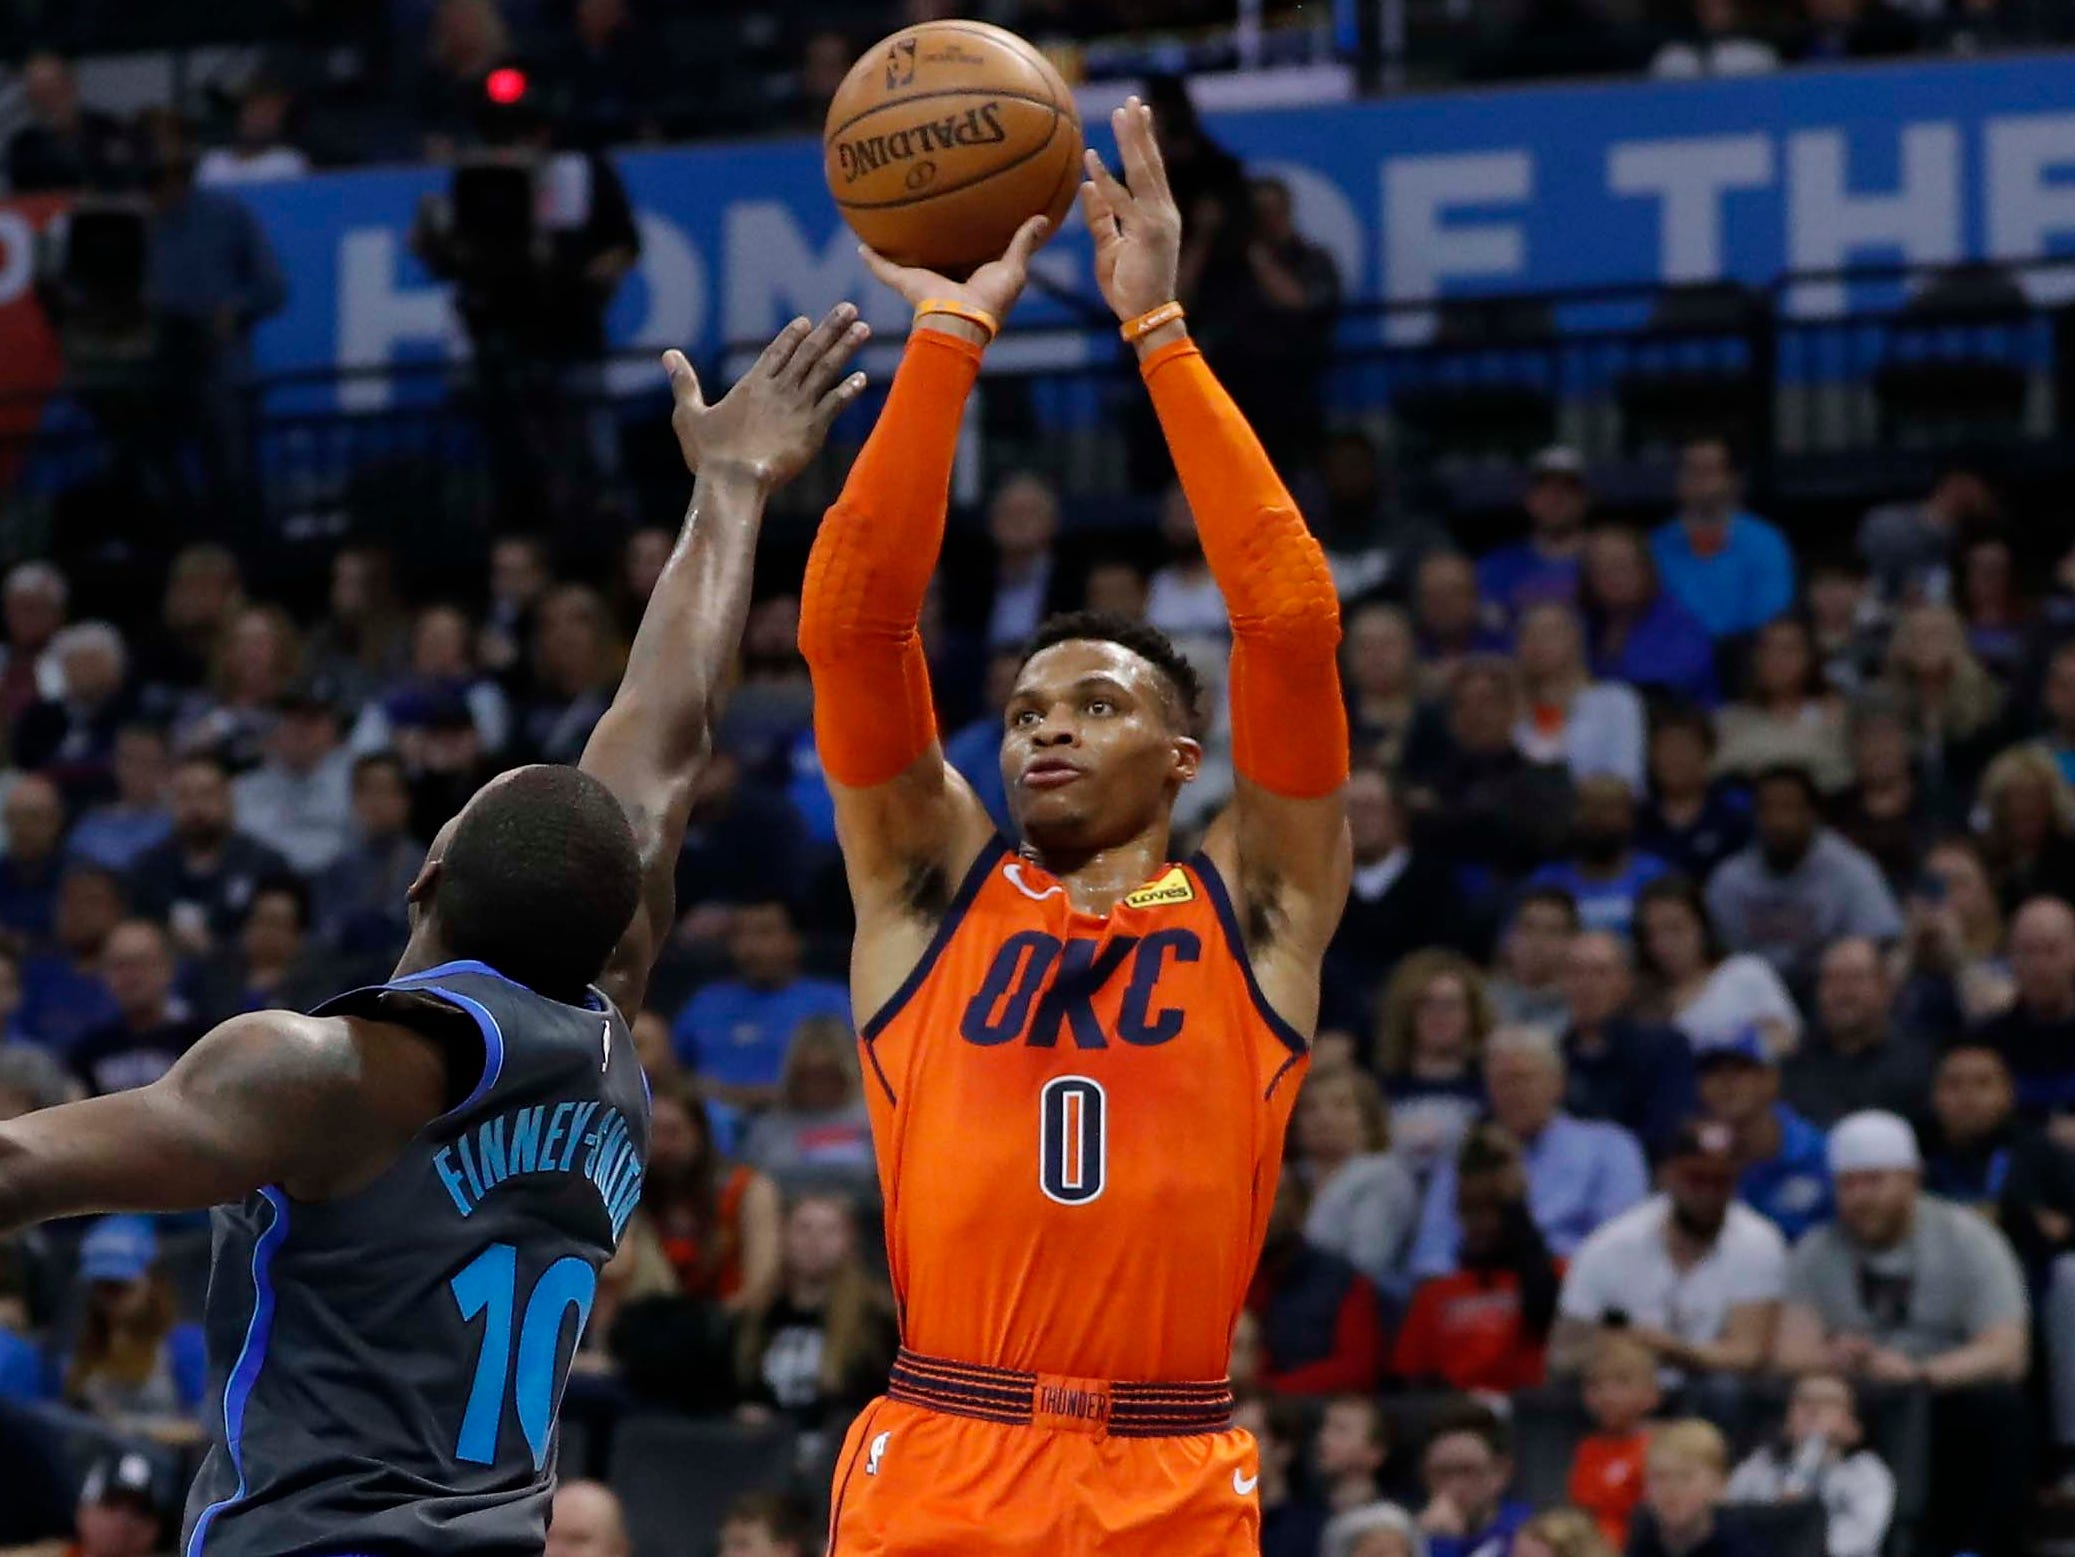 113. Russell Westbrook, Thunder (March 31): 25 points, 11 assists, 11 rebounds in 106-103 loss to Mavericks (30th of season).